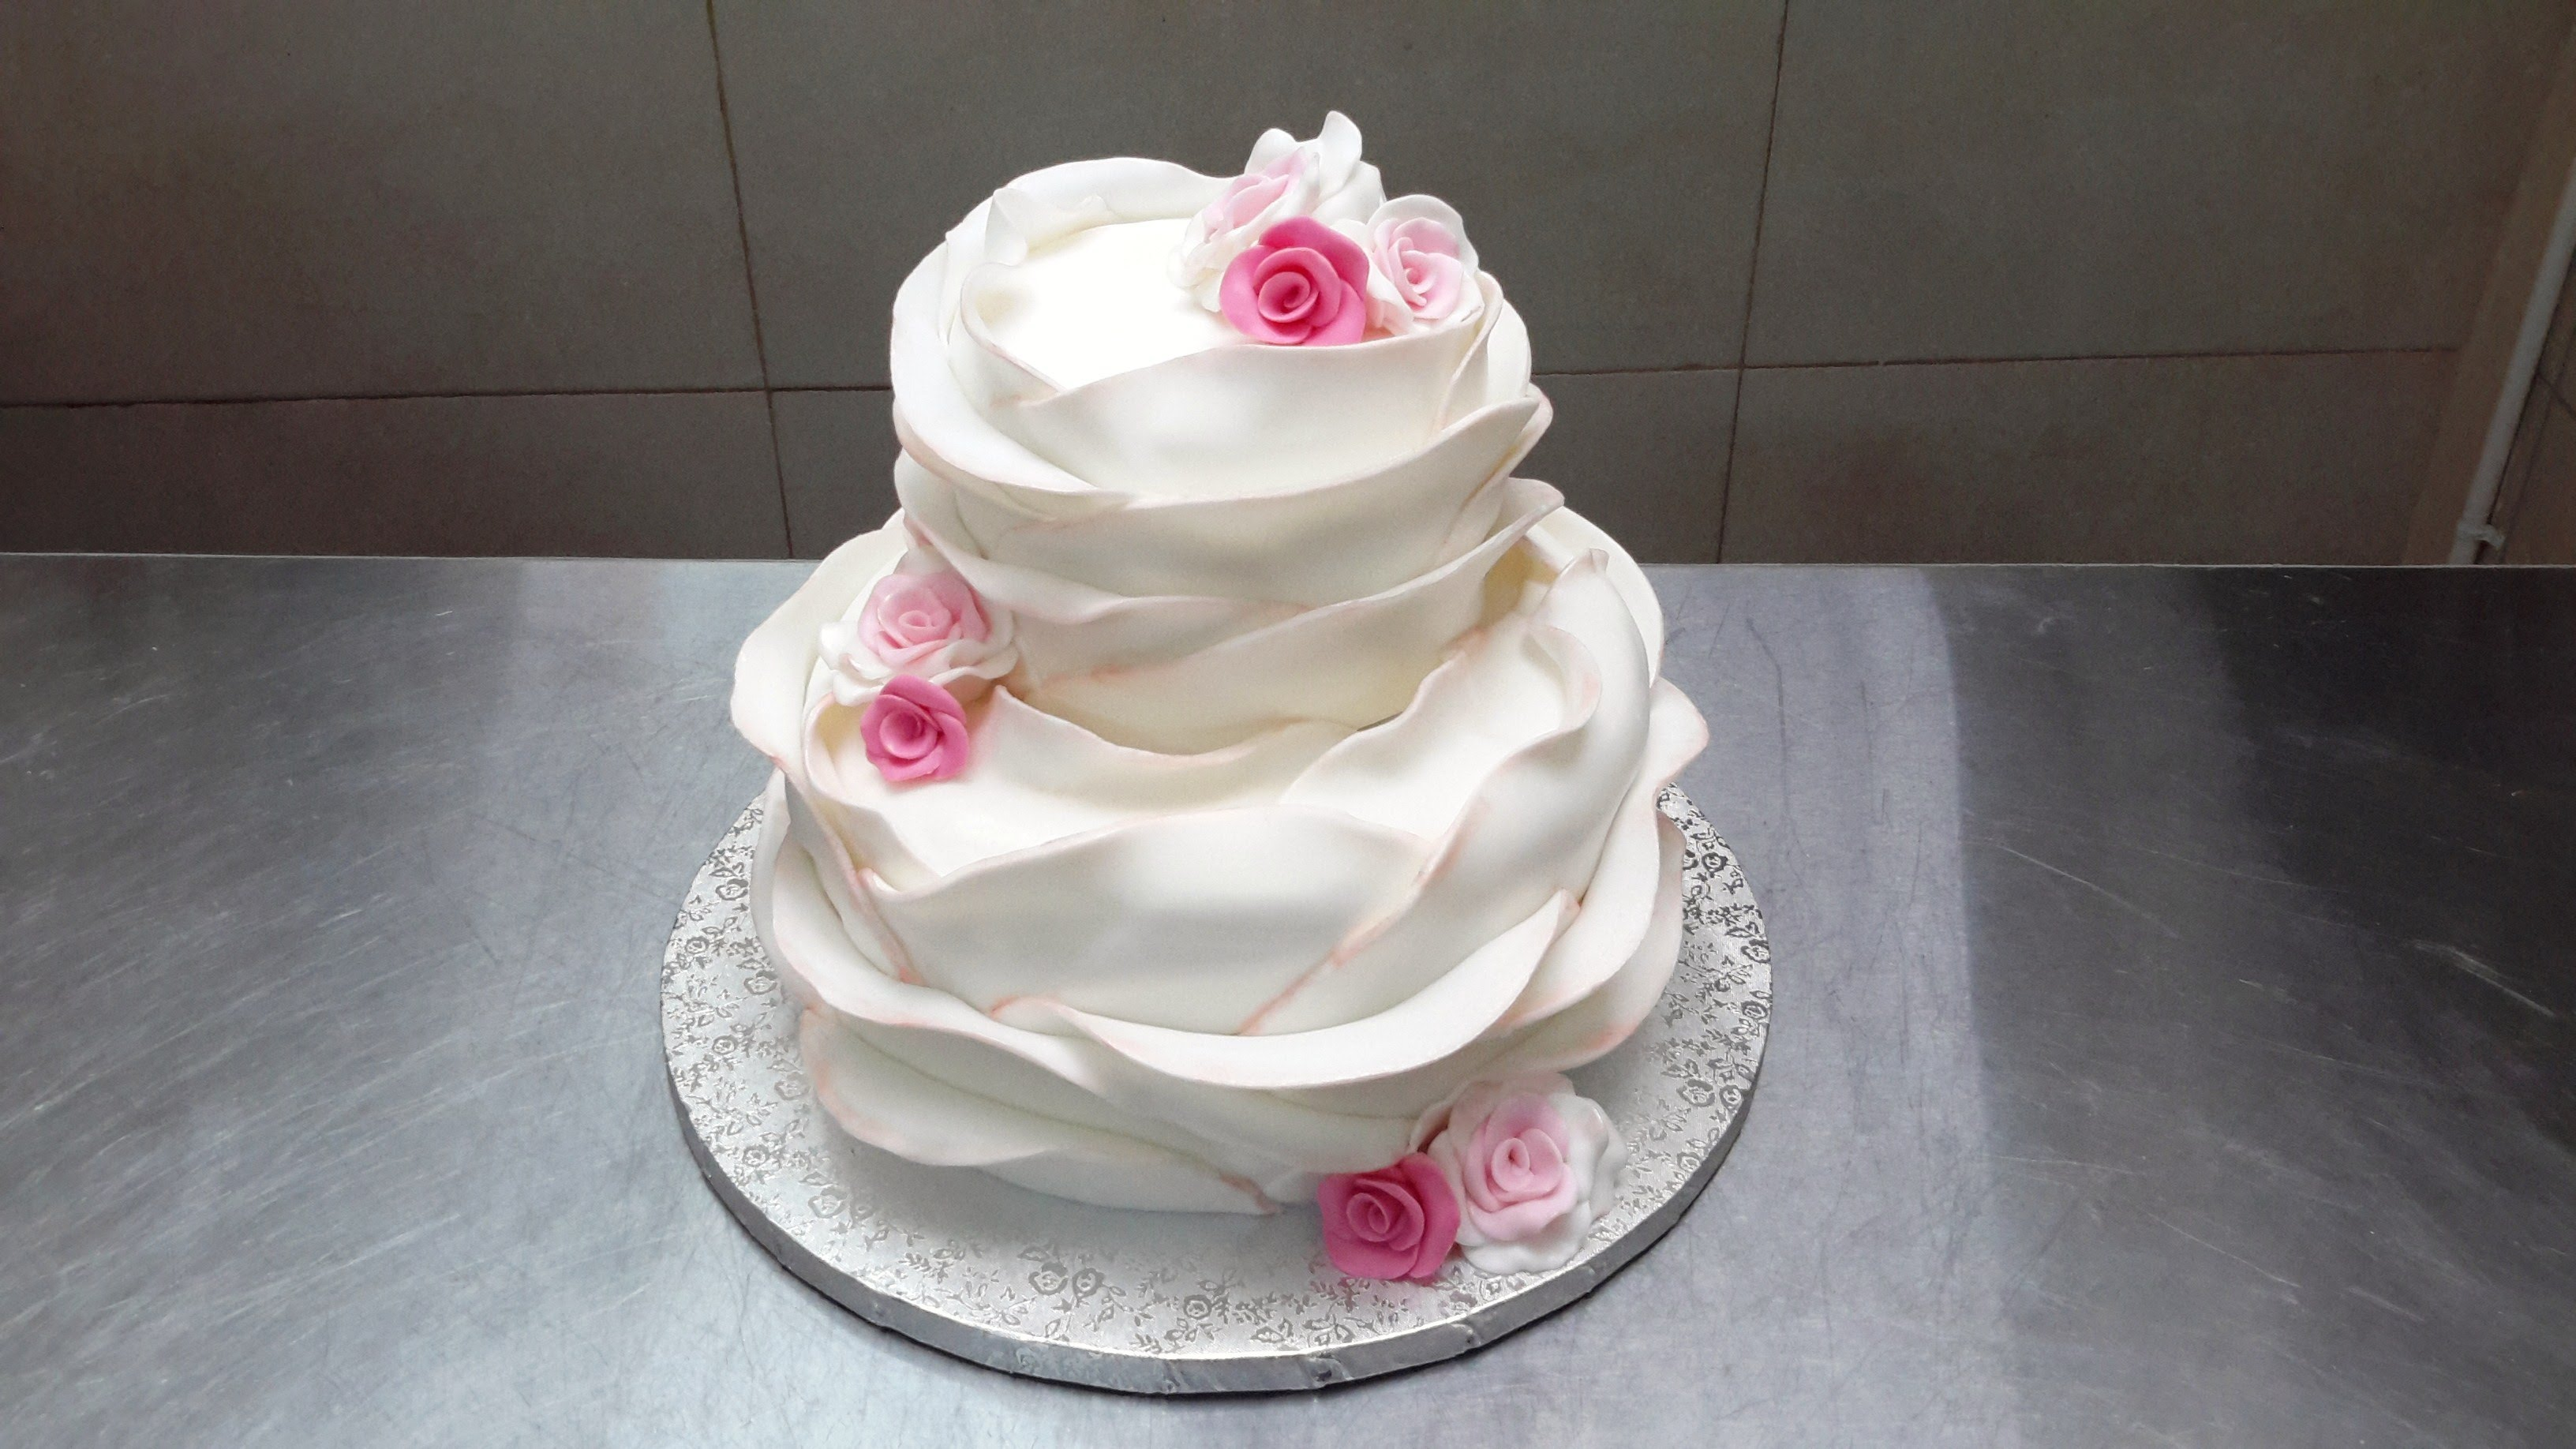 How To Make A Beautiful Ruffle Cake